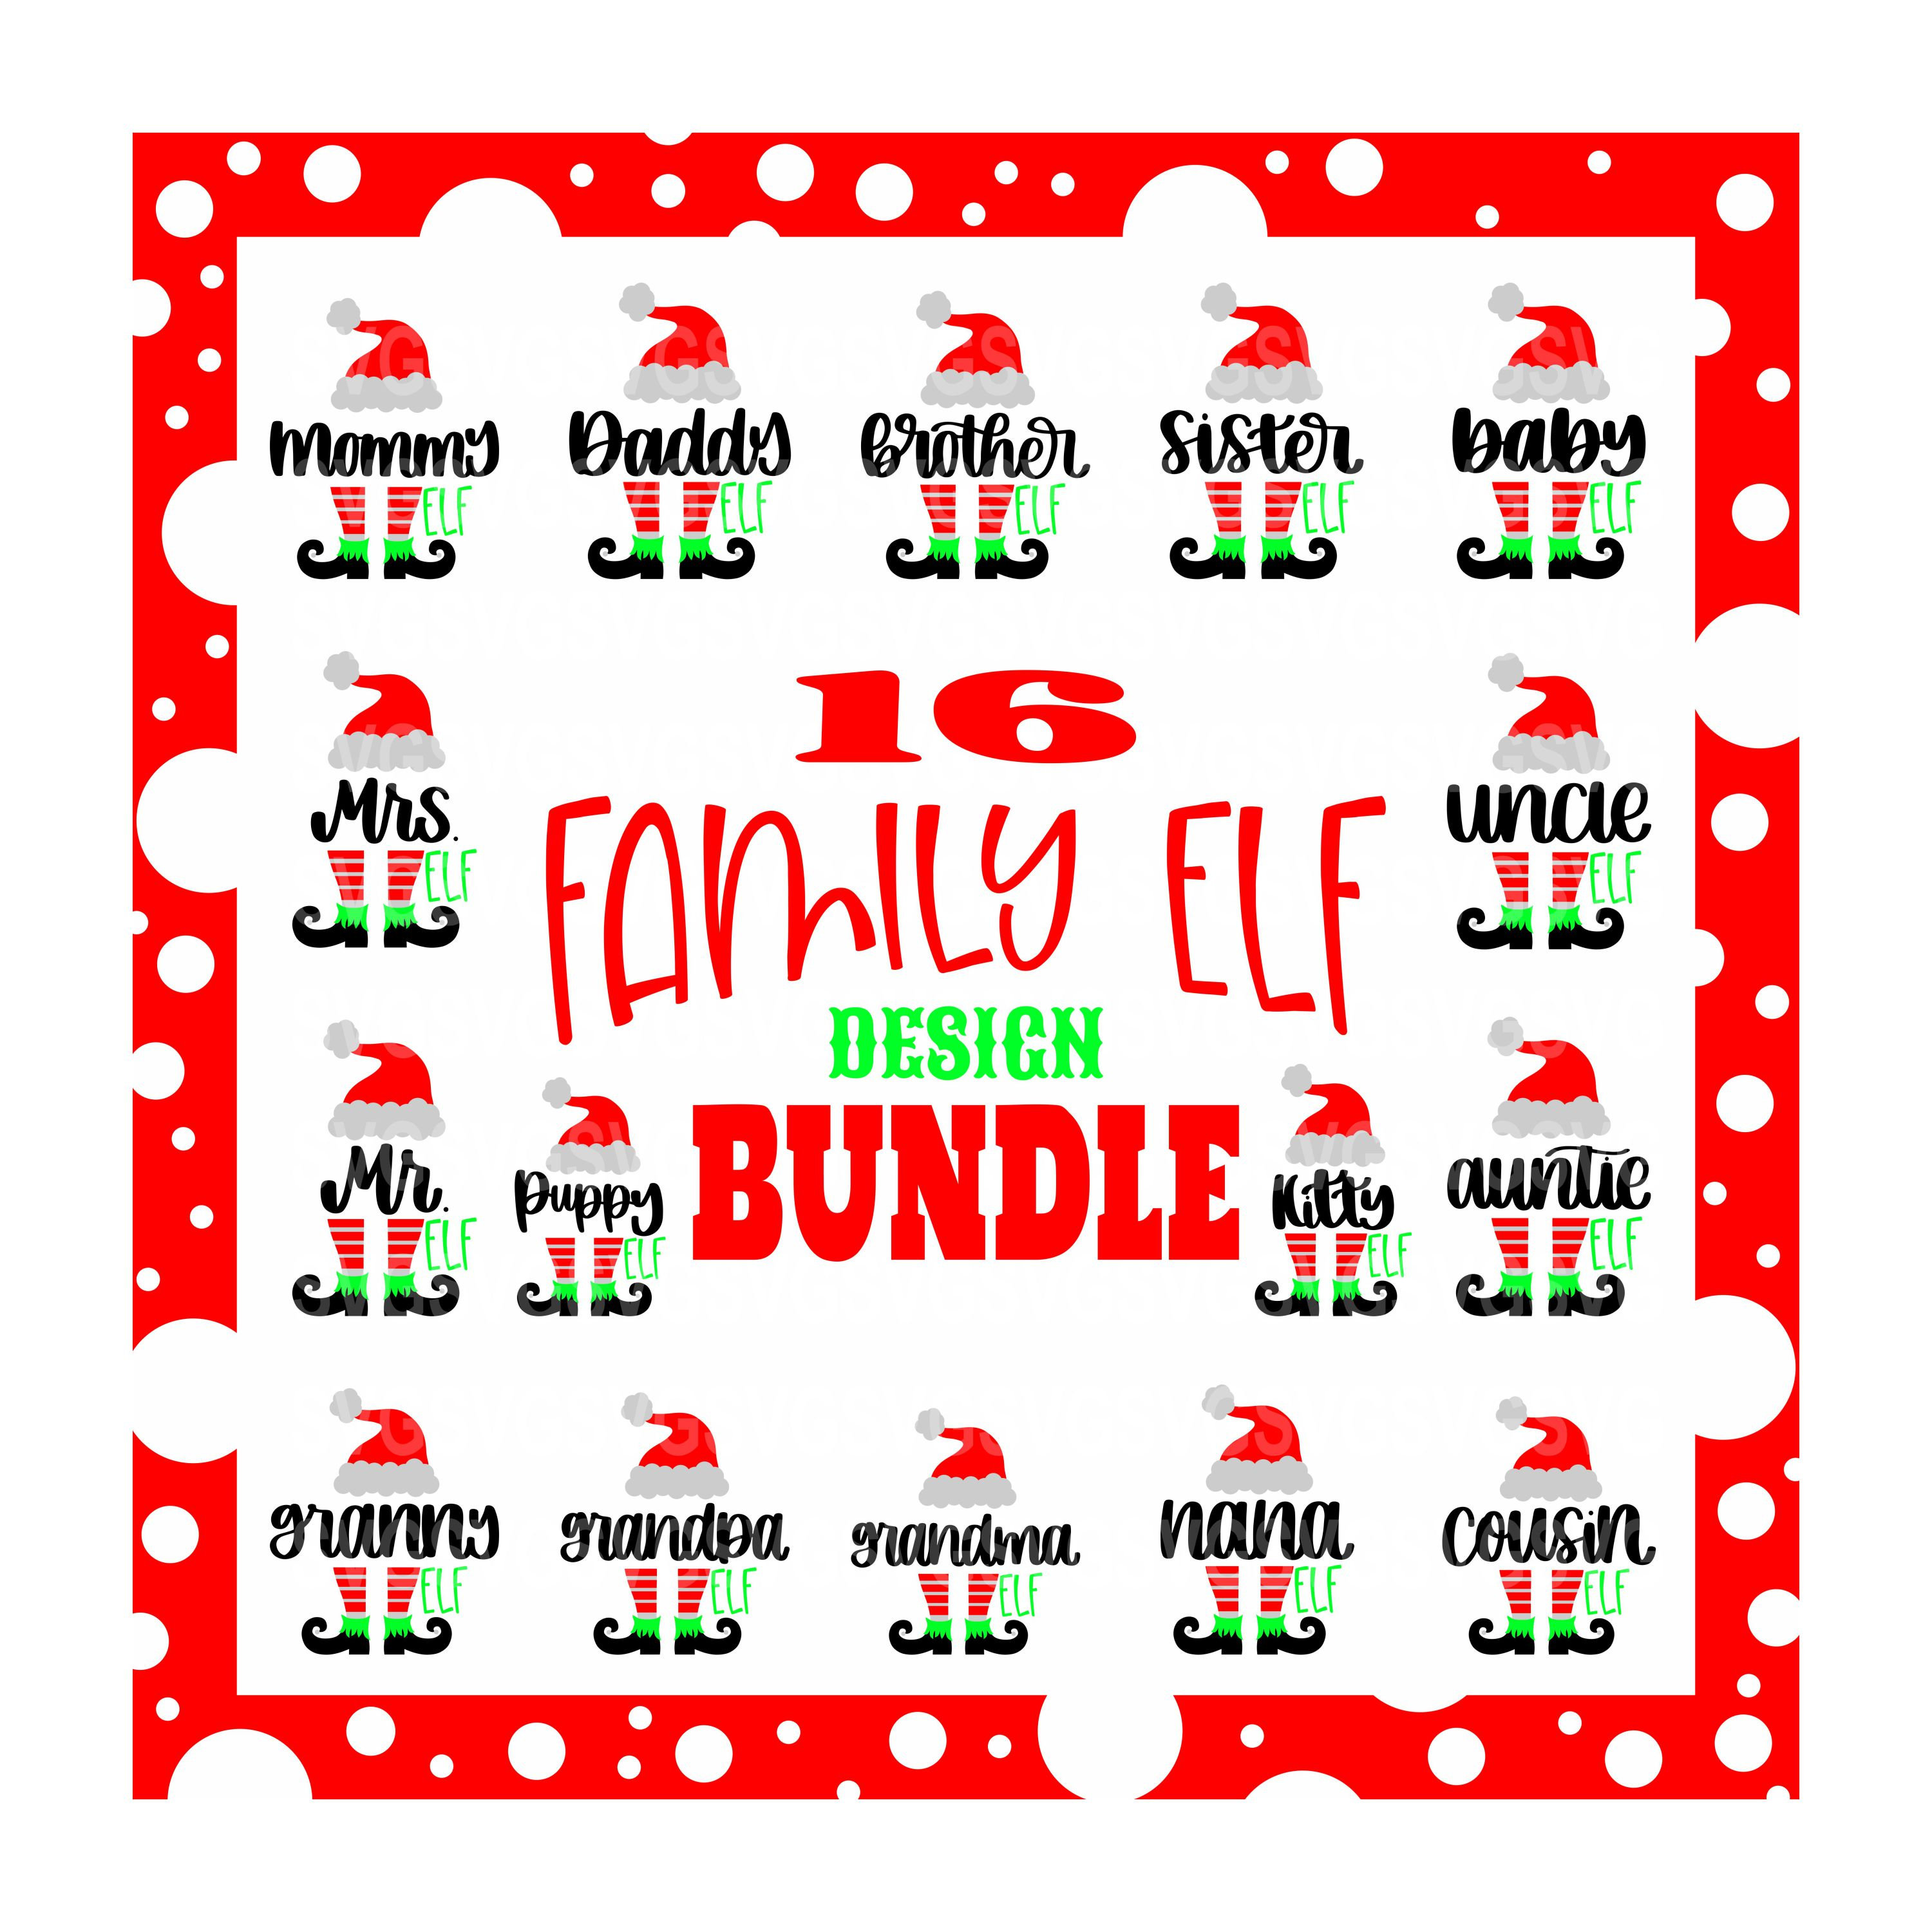 Elf-bundle-svgchristmas-elf-bundle-svgfamily-elf-bundle-svgsvg-bundle-bundle-svgchristmas-svg-designs-christmas-cut-file-cricut-svg-5fa09073